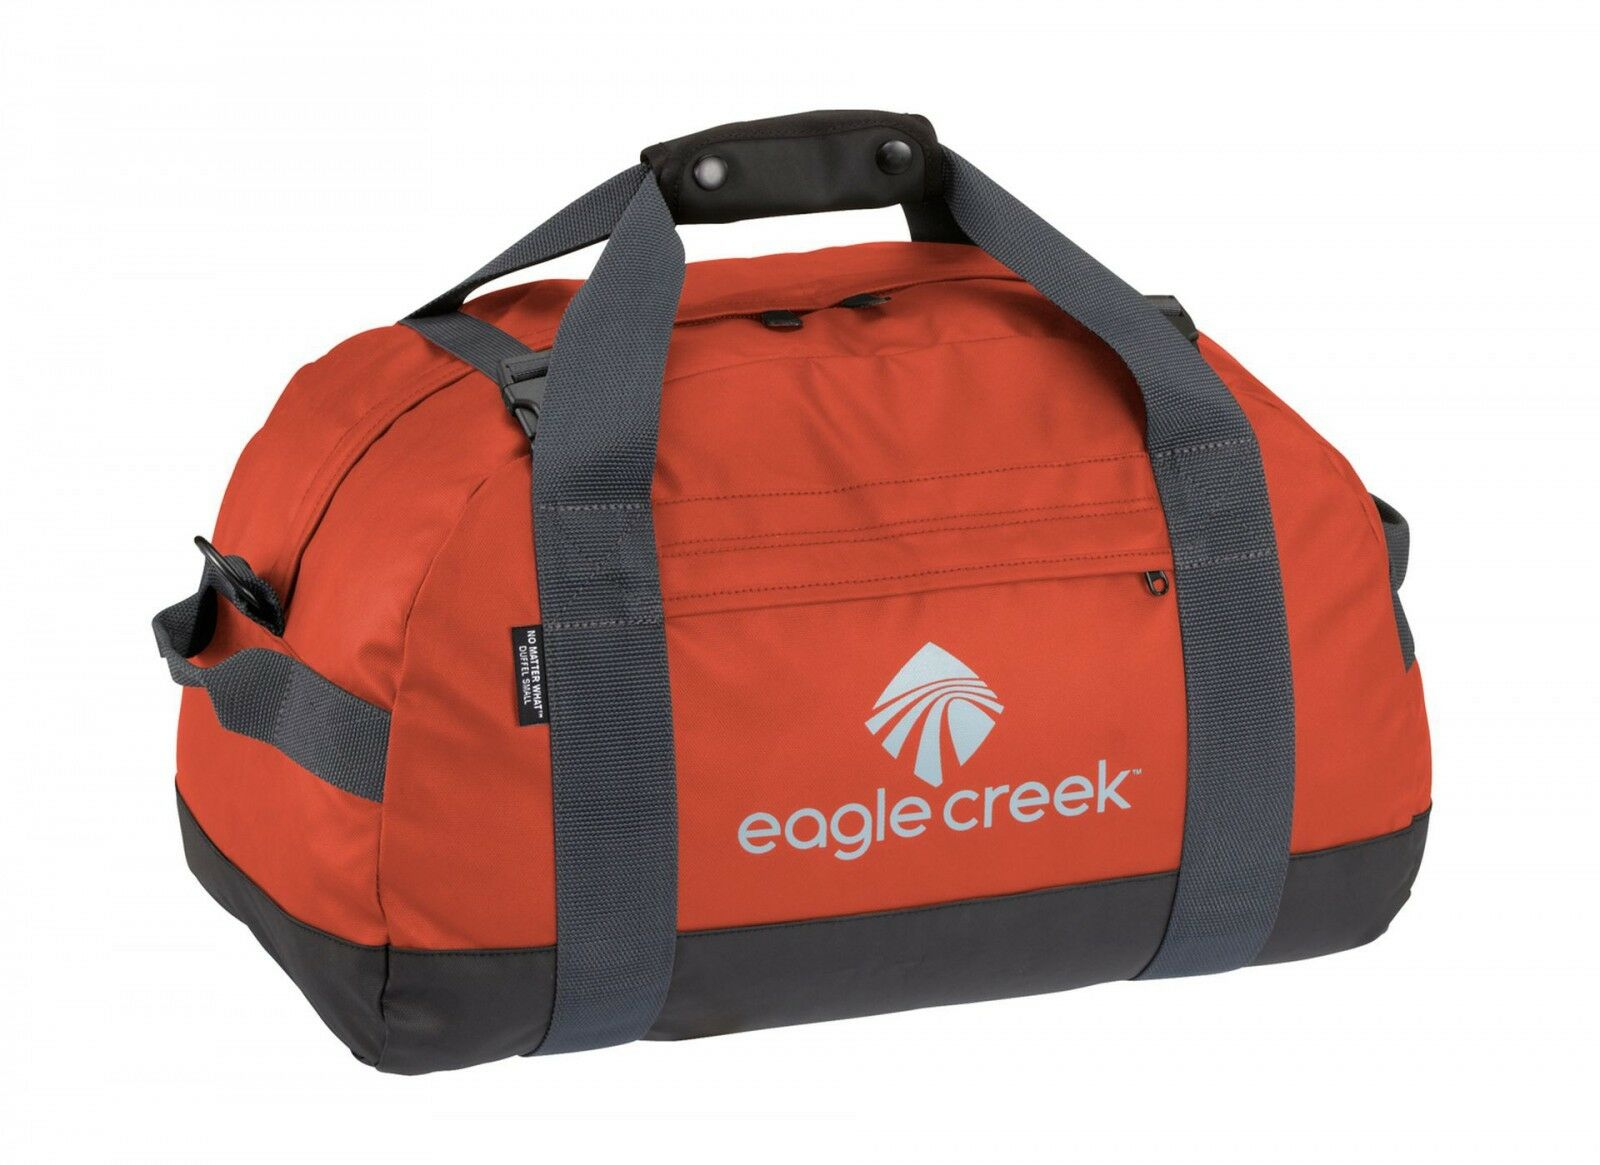 Eagle creek Travel Bag No Matter What Duffel S Red Clay